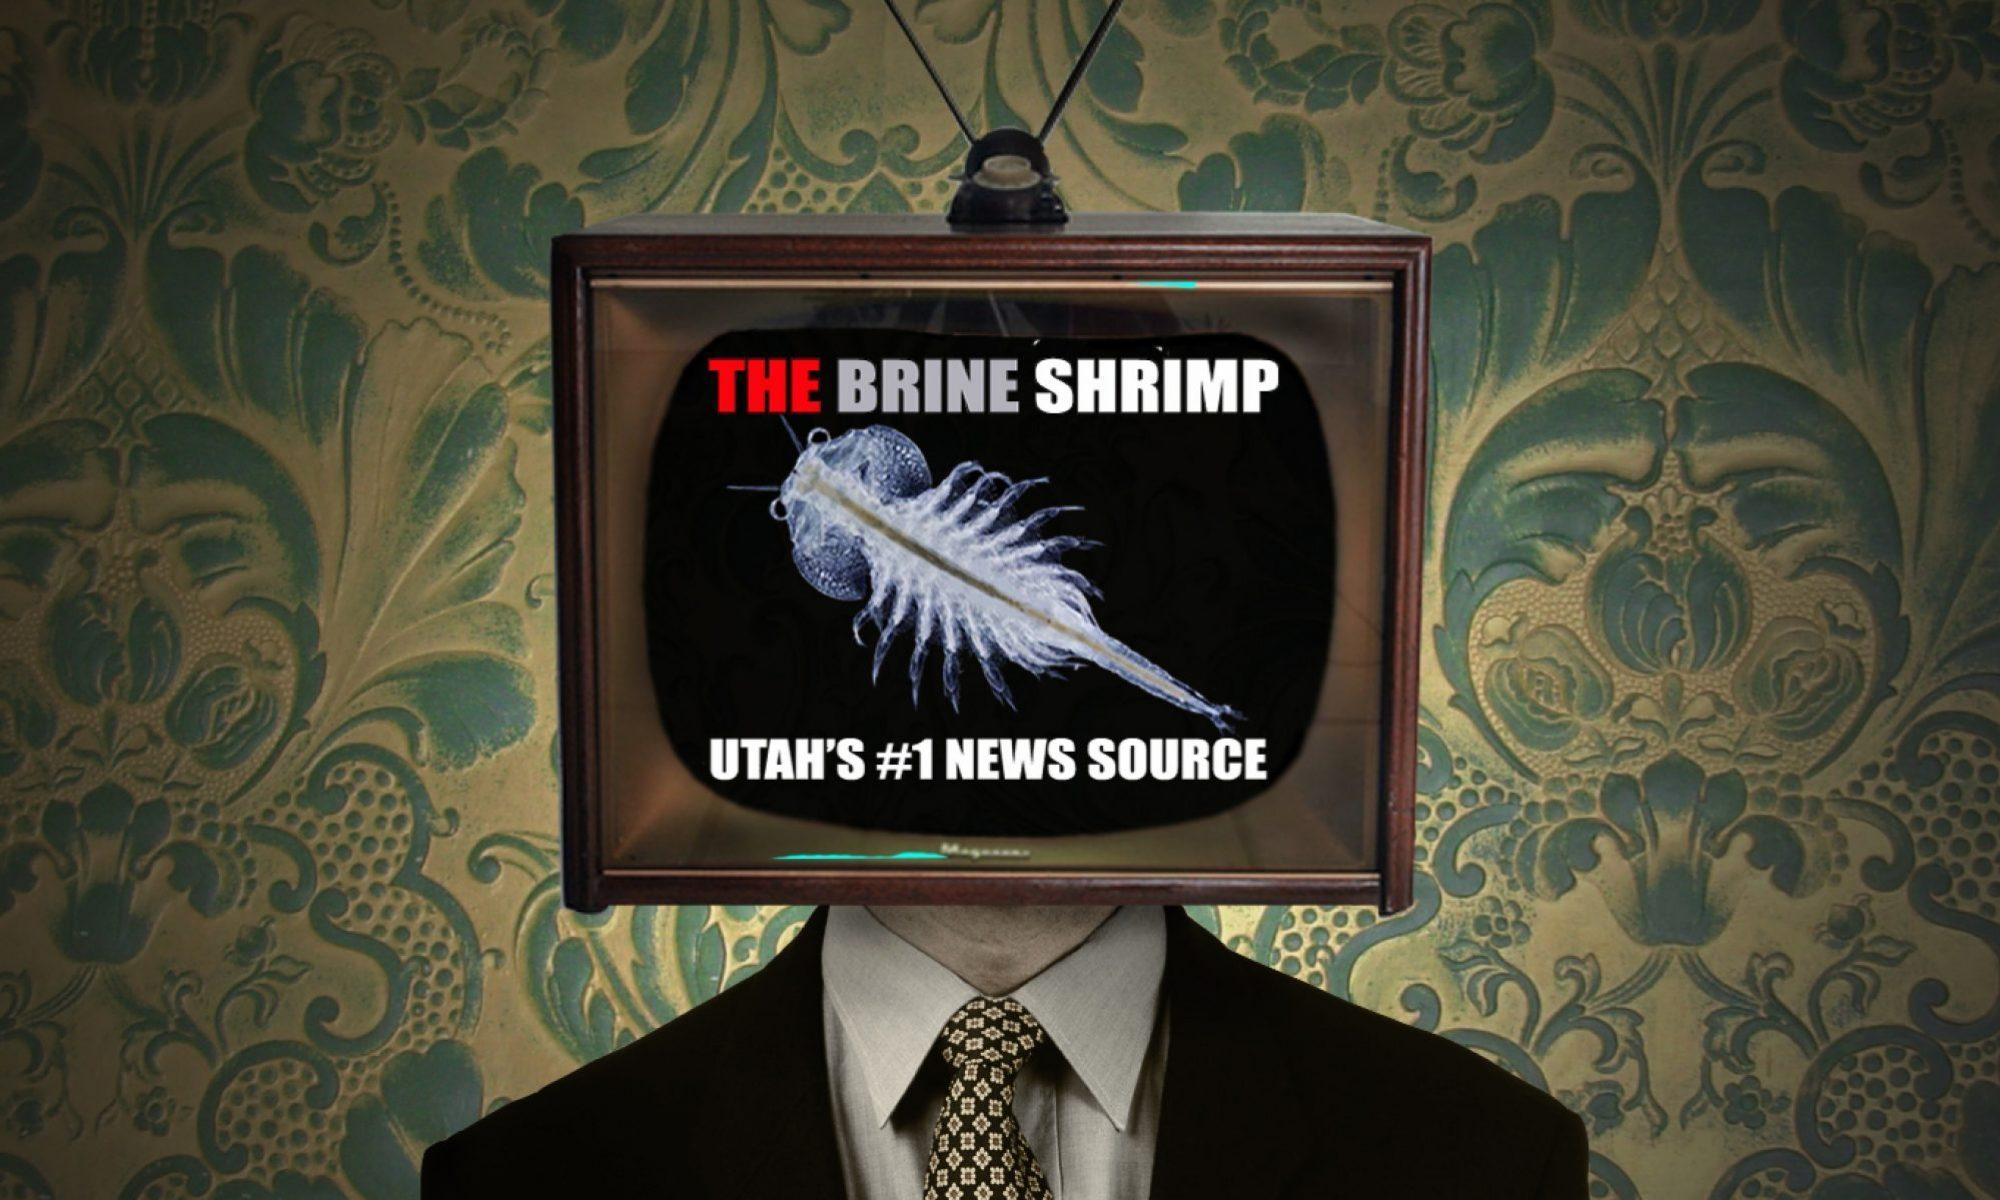 The Brine Shrimp